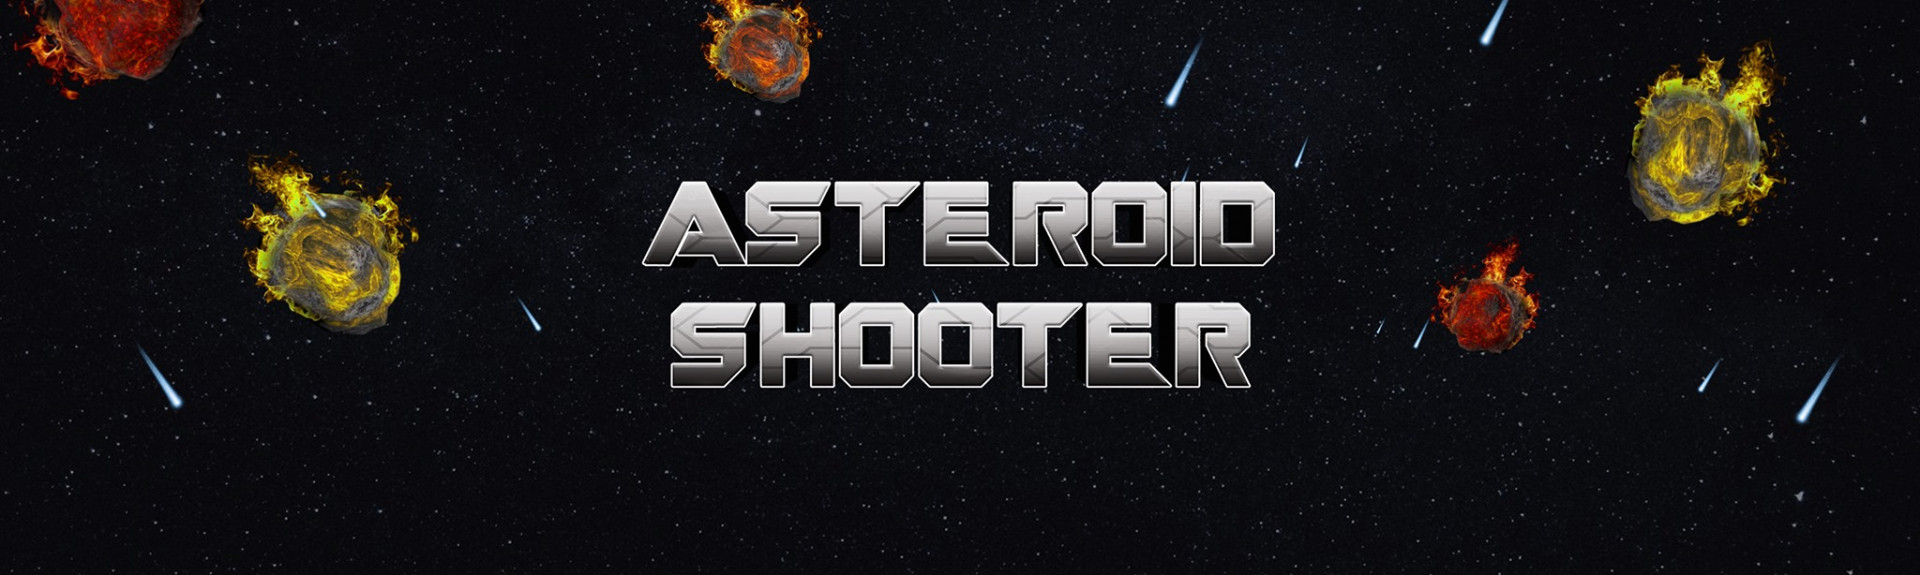 Asteroid Shooter